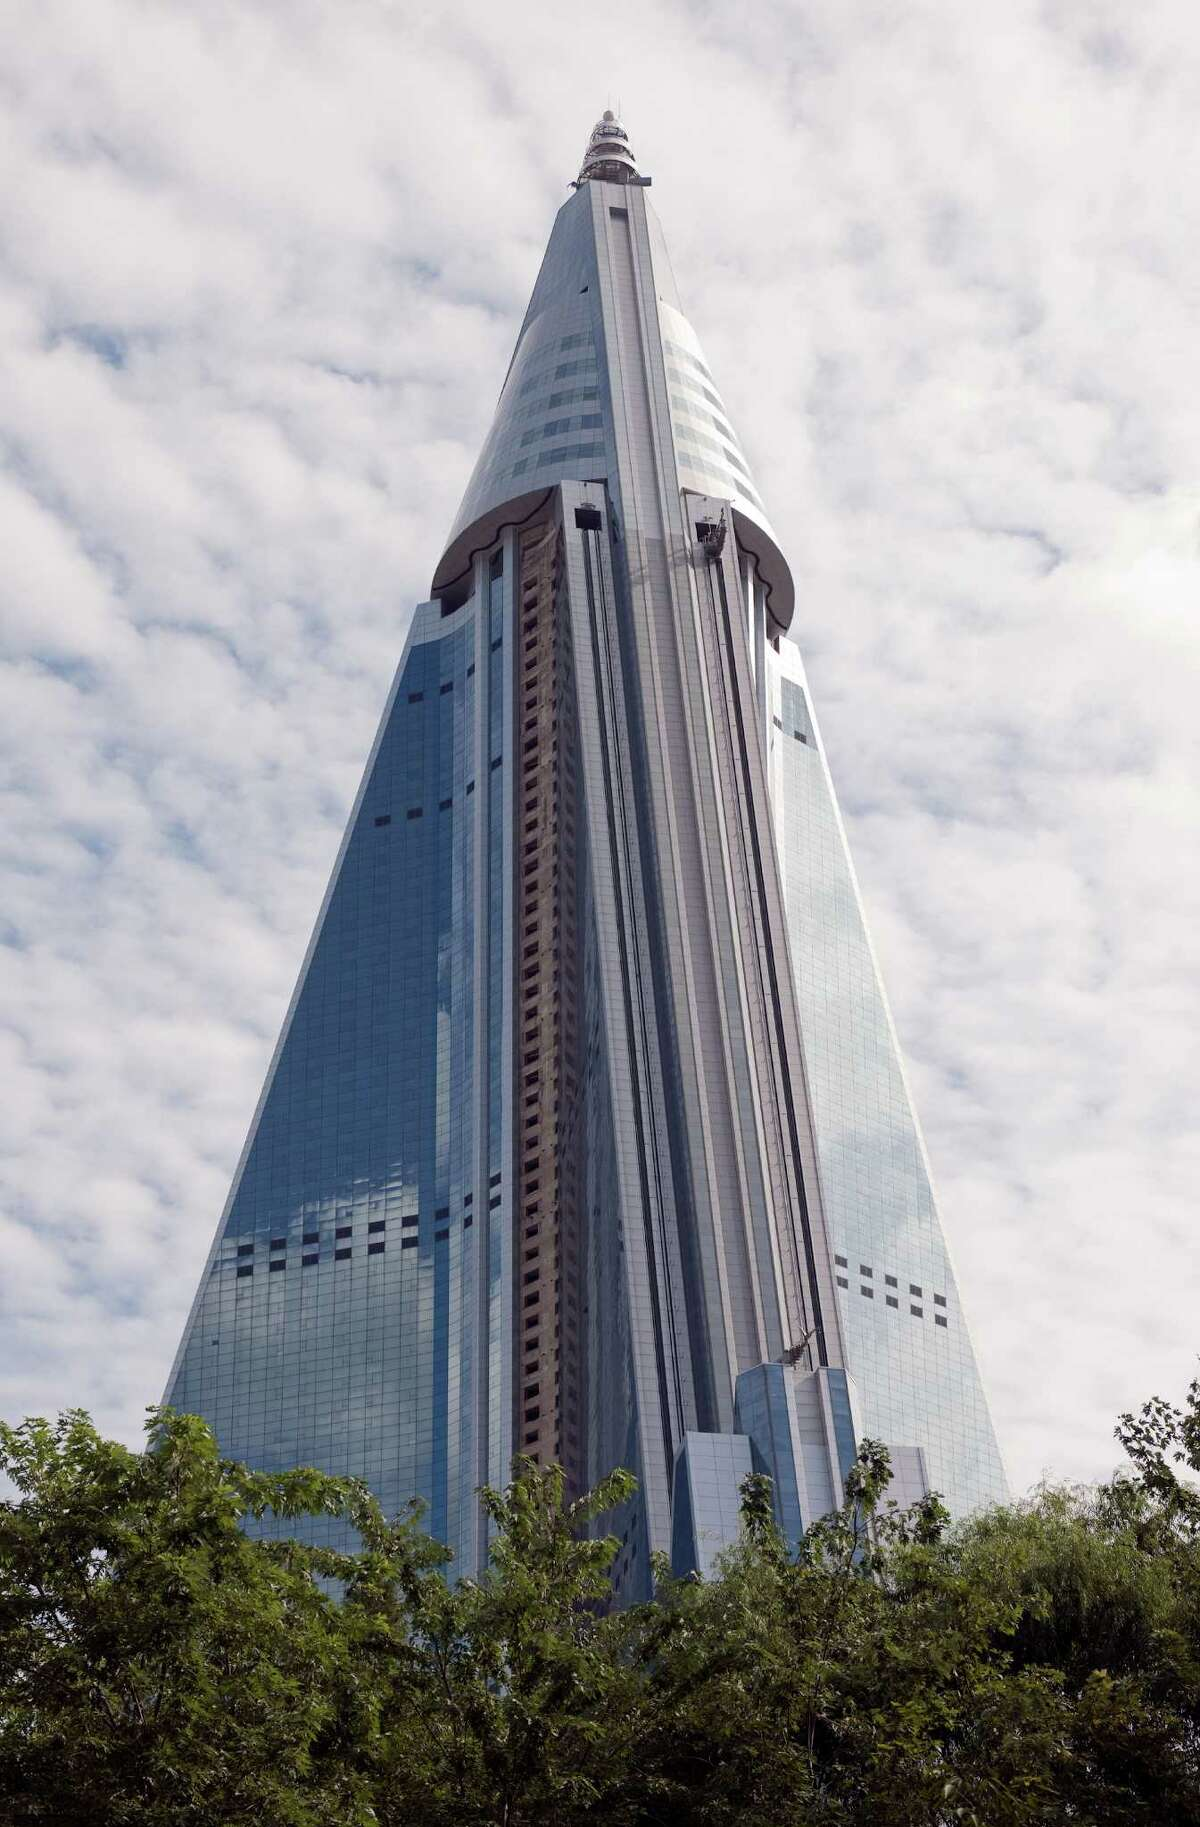 The Ryugyong Hotel on September 19, 2010 in Pyongyang, North Korea.